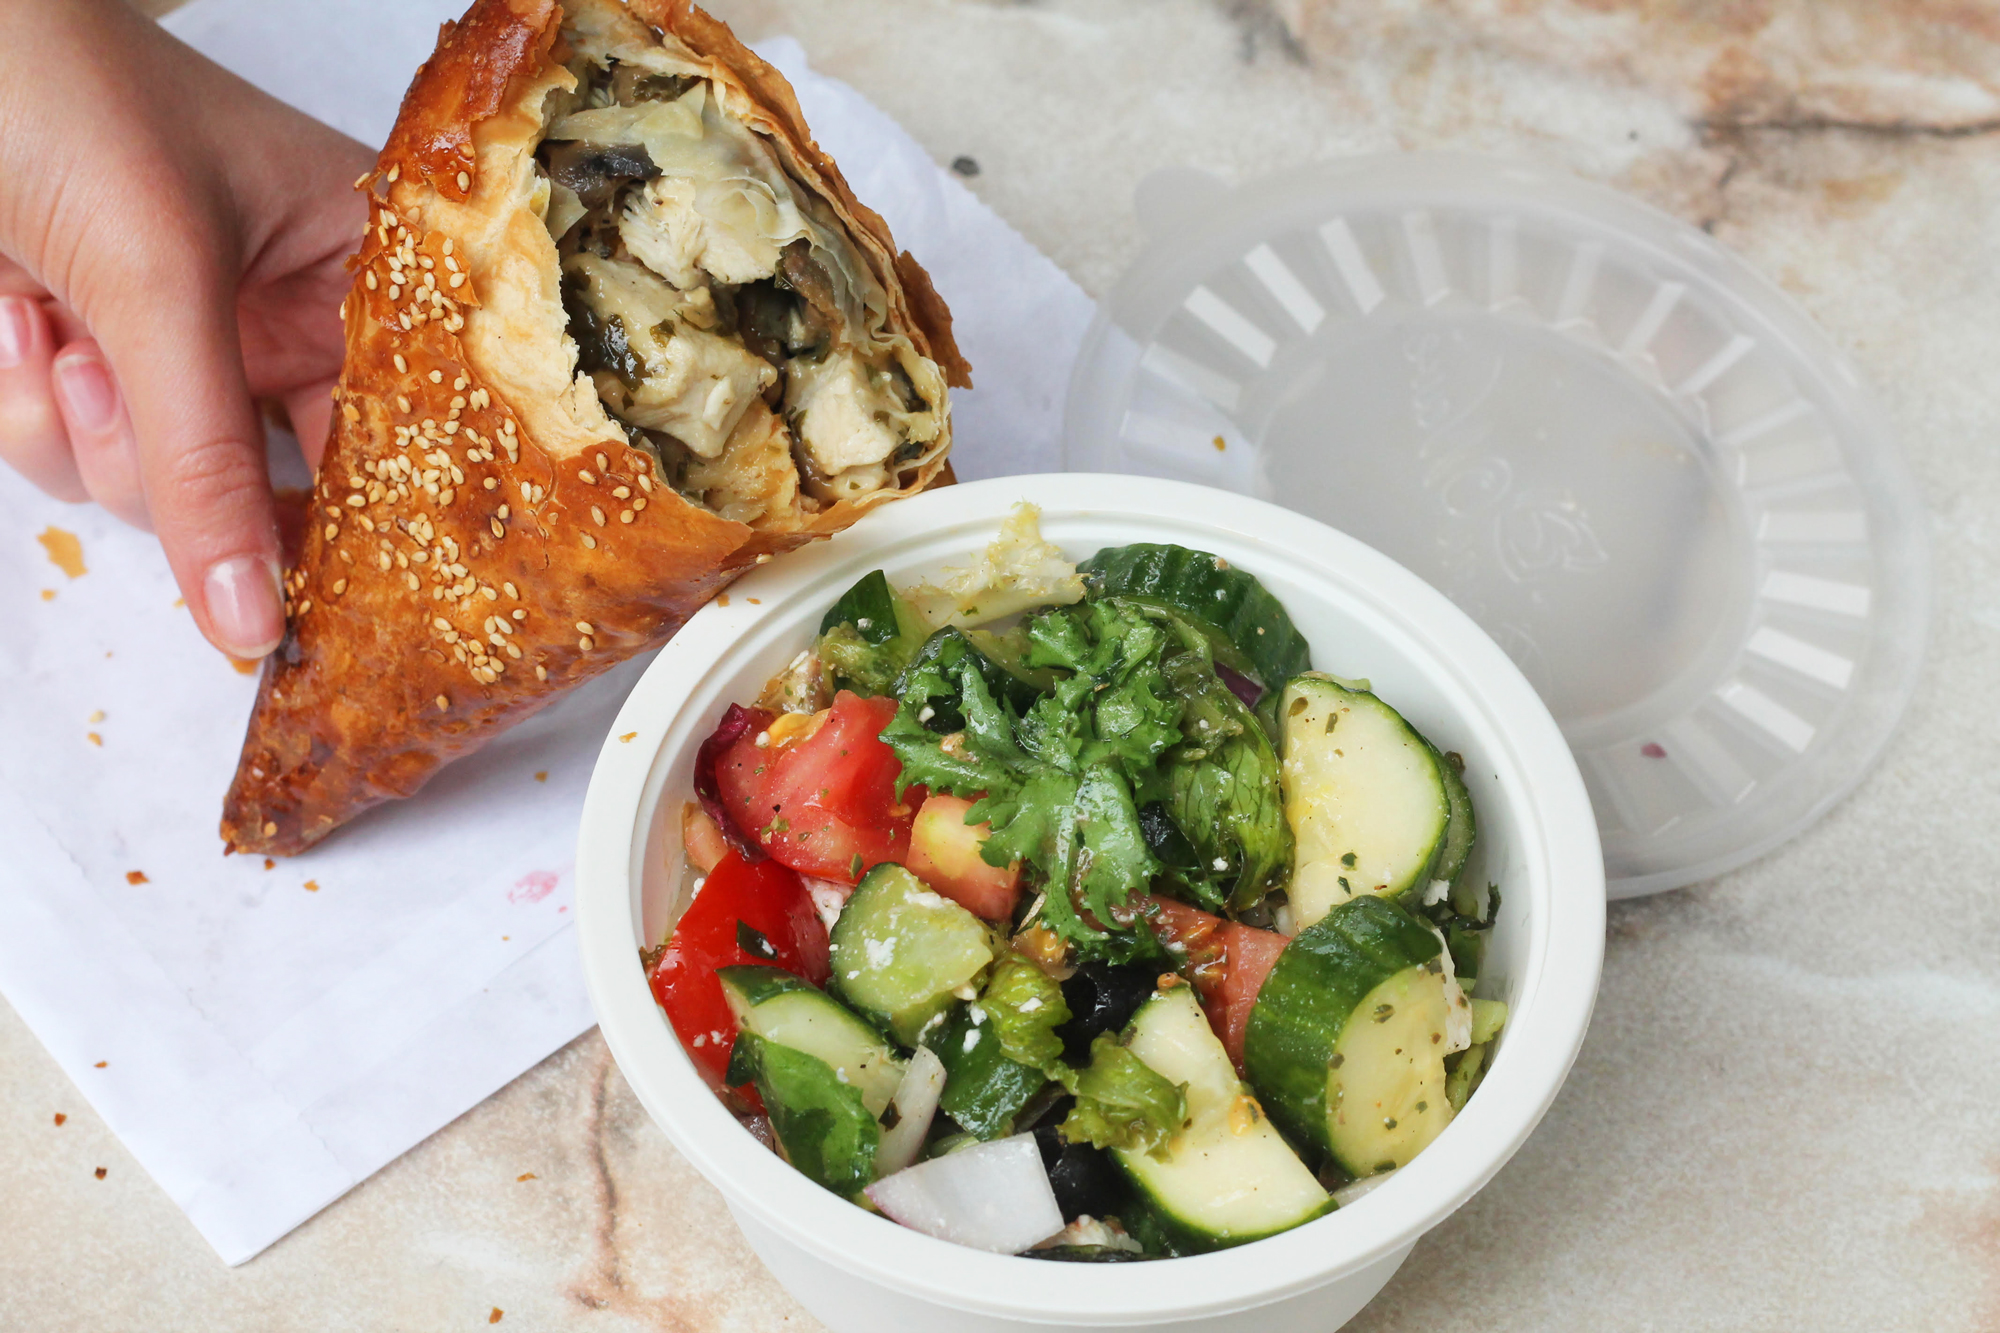 savoury pastry and salad at Reynold's Cafe, Fitzrovia